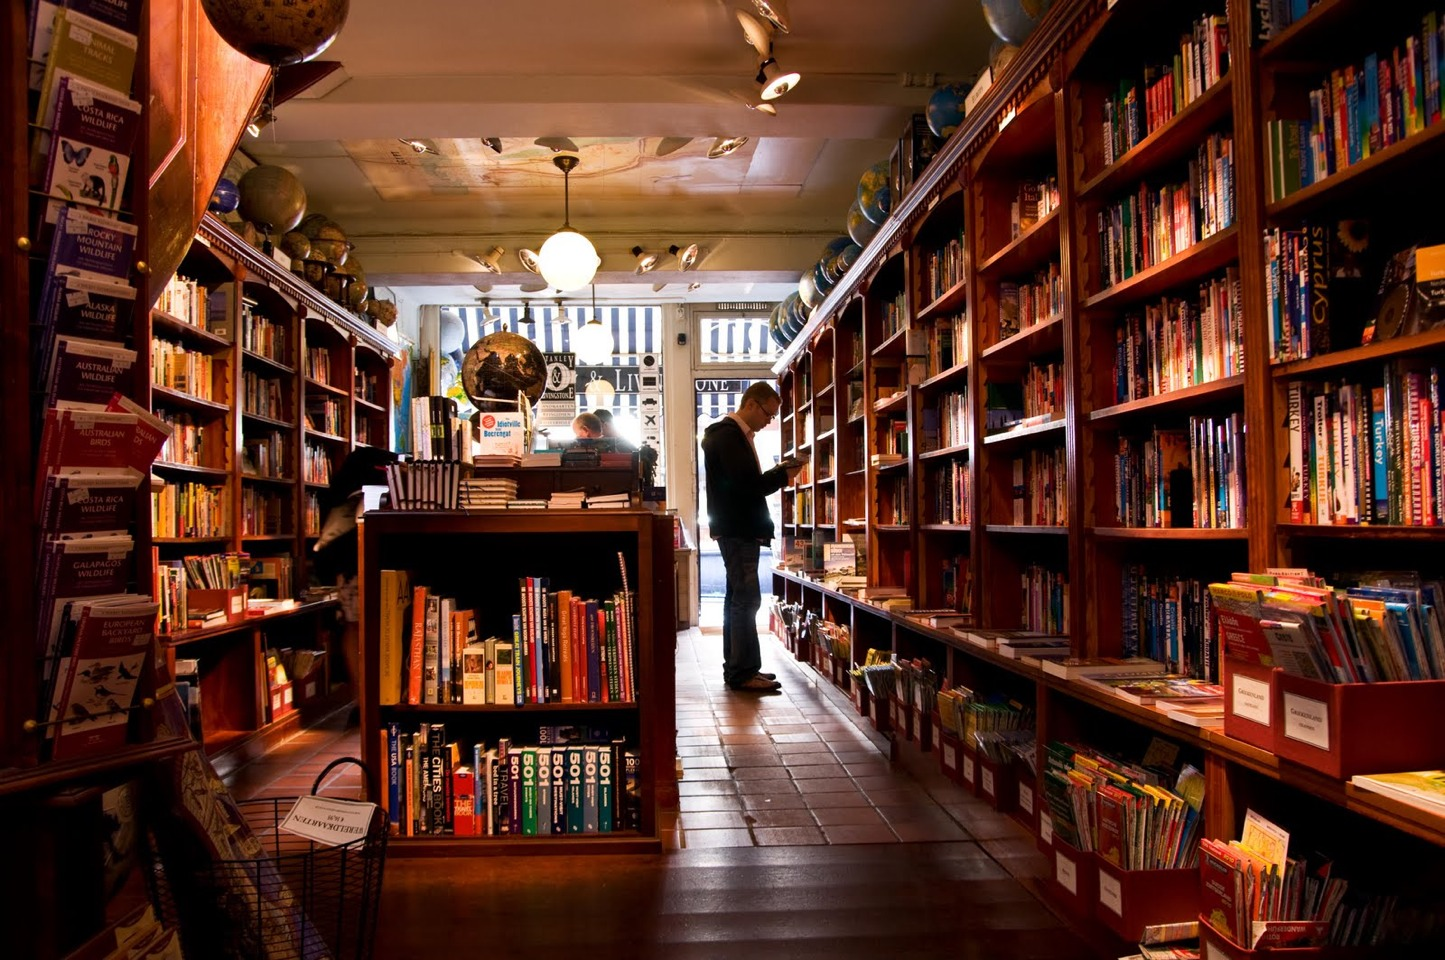 Go to a book store!